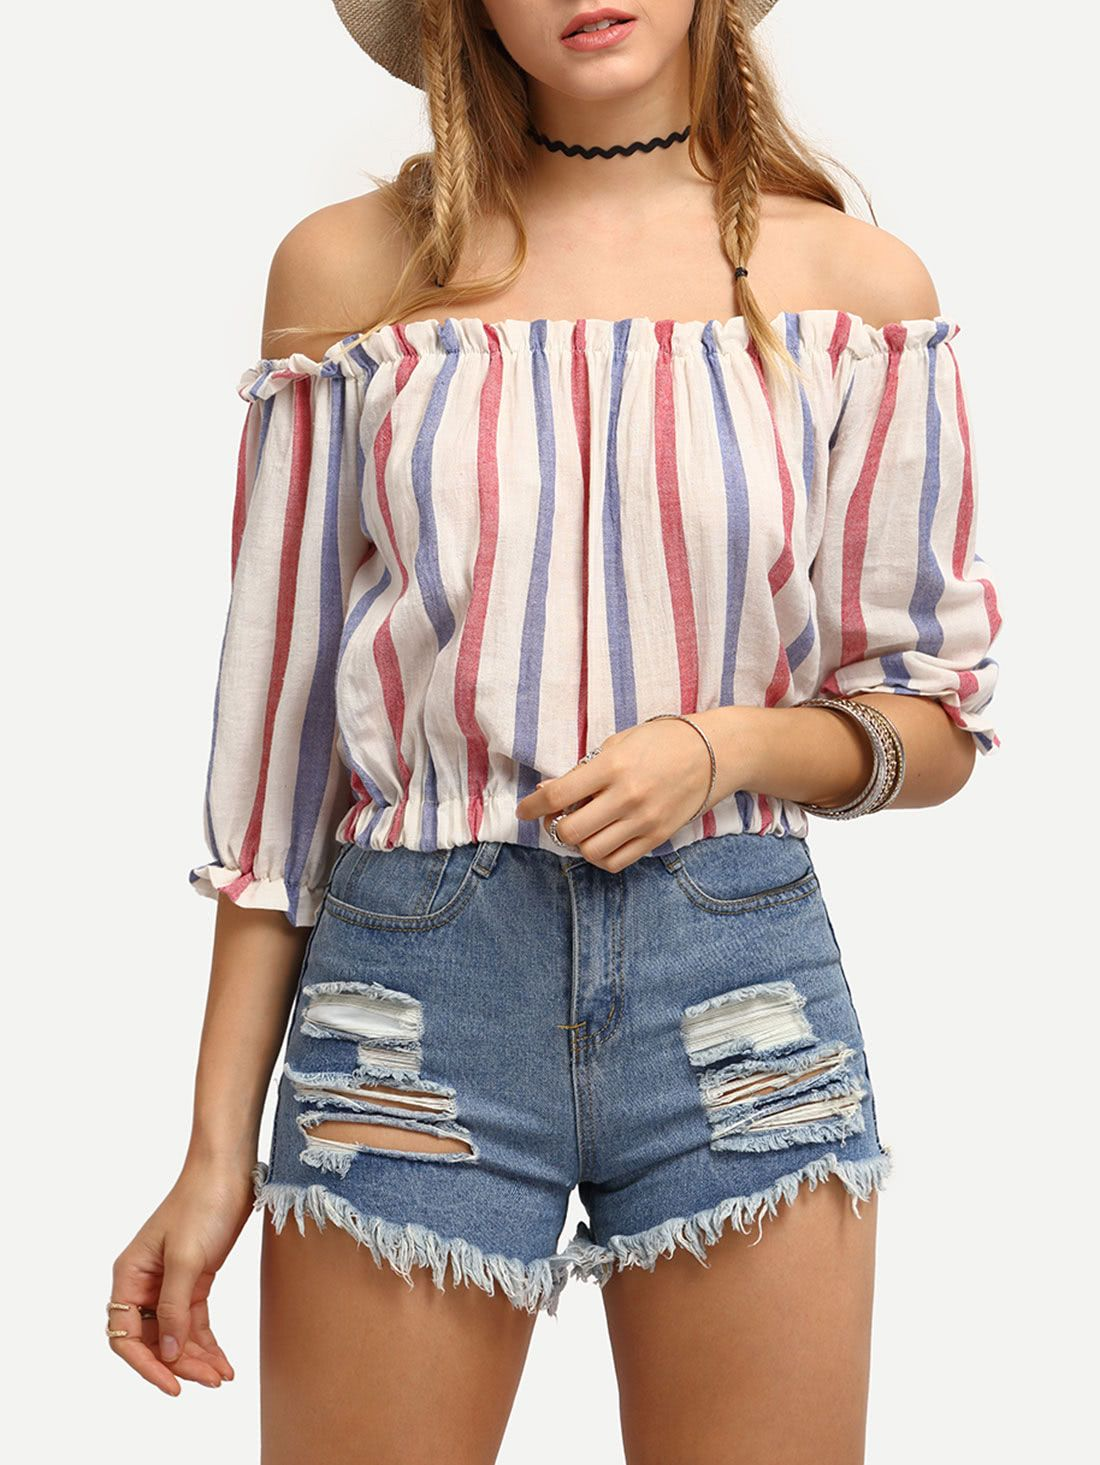 aff72bc62bc Blue & Red Striped Off-The-Shoulder Blouse, $14 from RomWe. Cool and  adorable for summer. But wear some decent shorts! Enjoy RUSHWORLD boards,  BUDGET ...